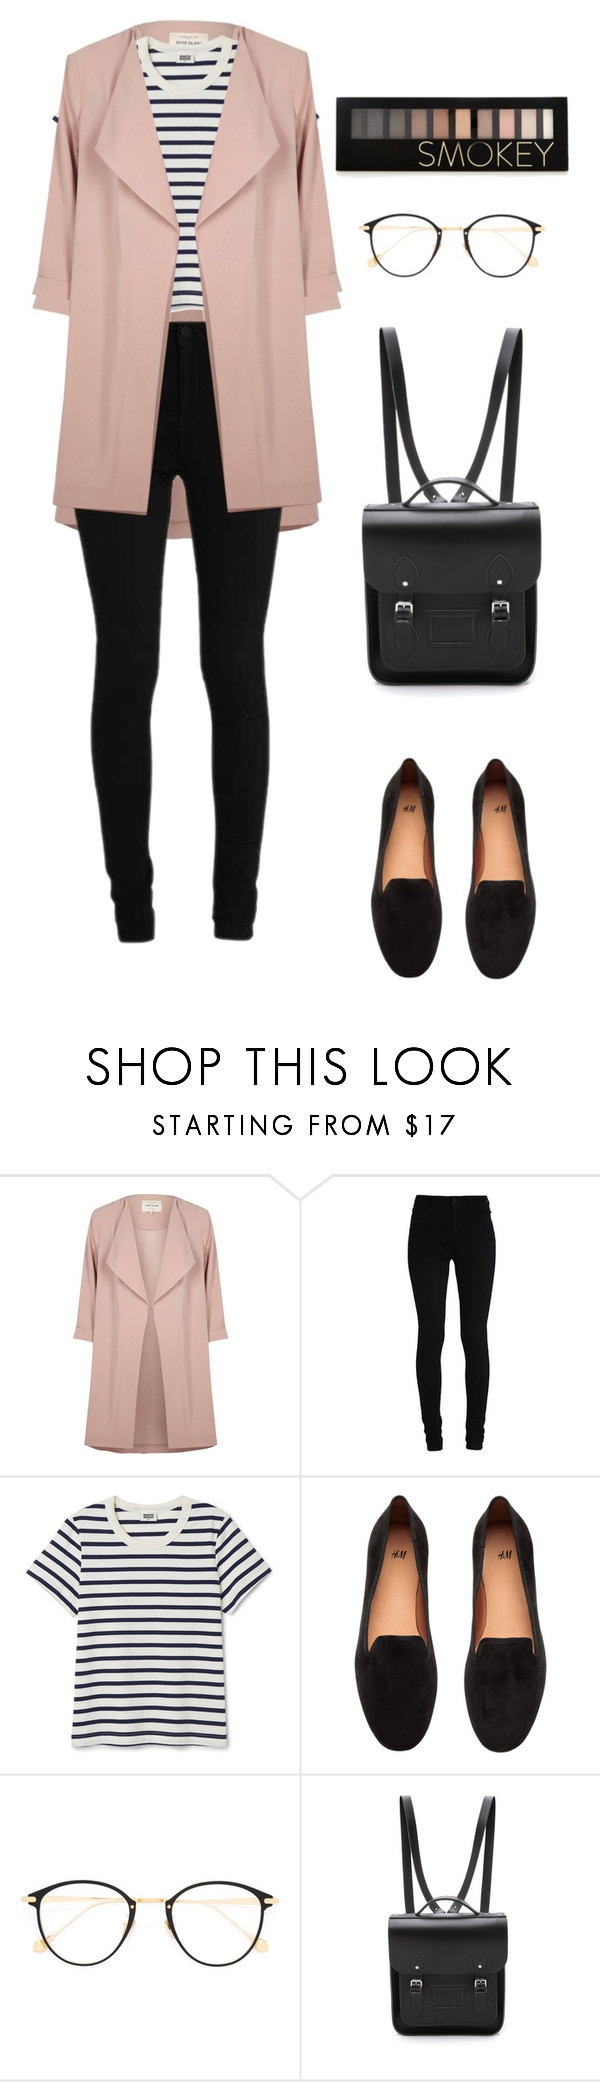 """Untitled #43"" by naomi2003a ❤ liked on Polyvore featuring River Island, H&M, Frency & Mercury, The Cambridge Satchel Company and Forever 21"